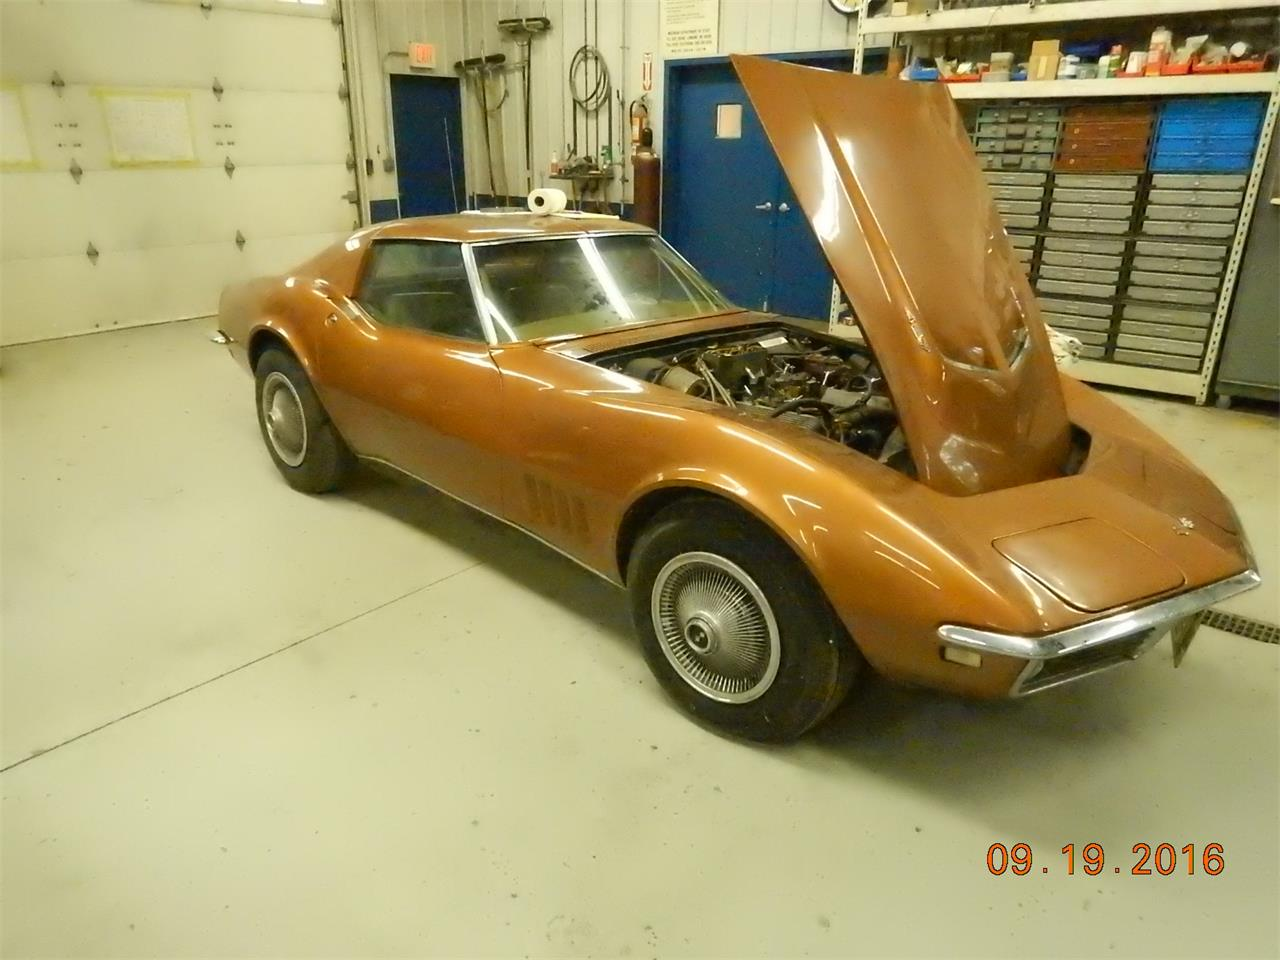 Large Picture of 1968 Chevrolet Corvette located in Hancock Michigan - $21,000.00 Offered by a Private Seller - LHRE